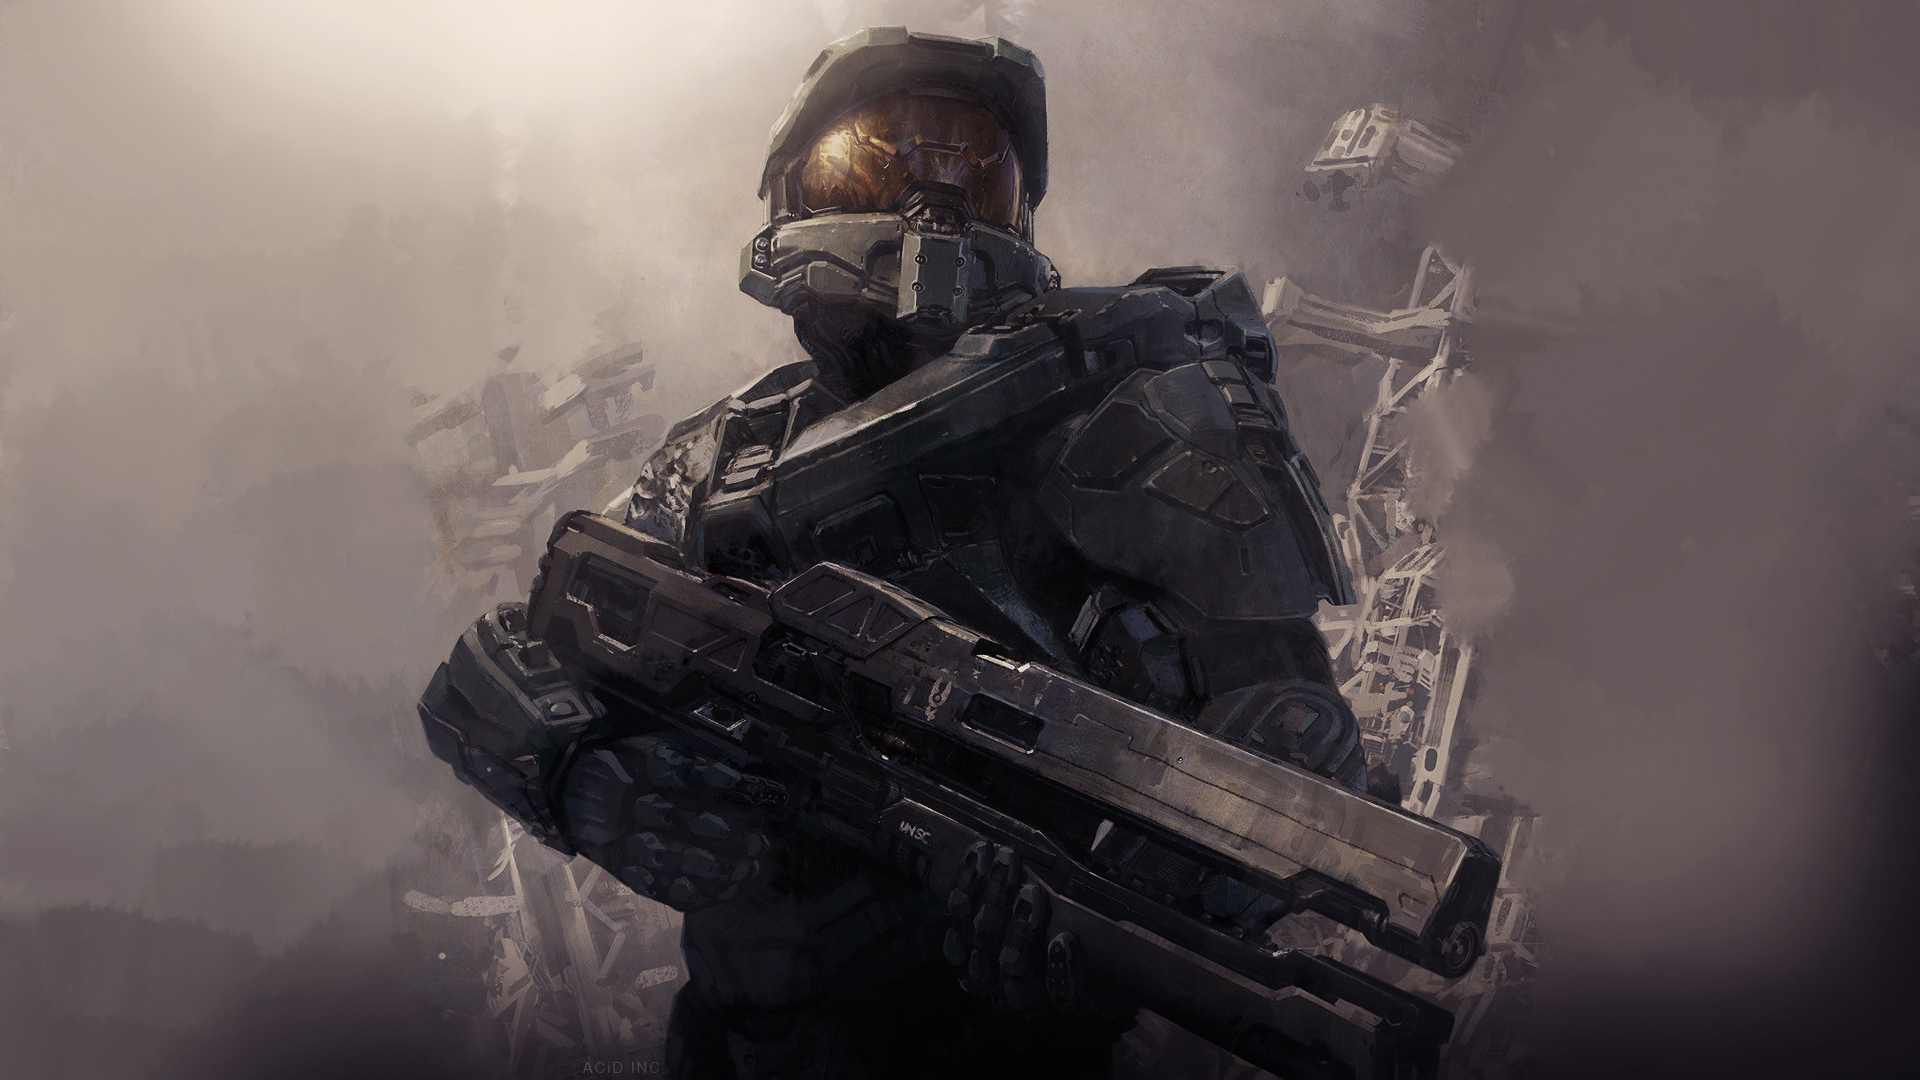 Halo 4 HD Wallpaper Background Image 1920x1080 ID393919 1920x1080